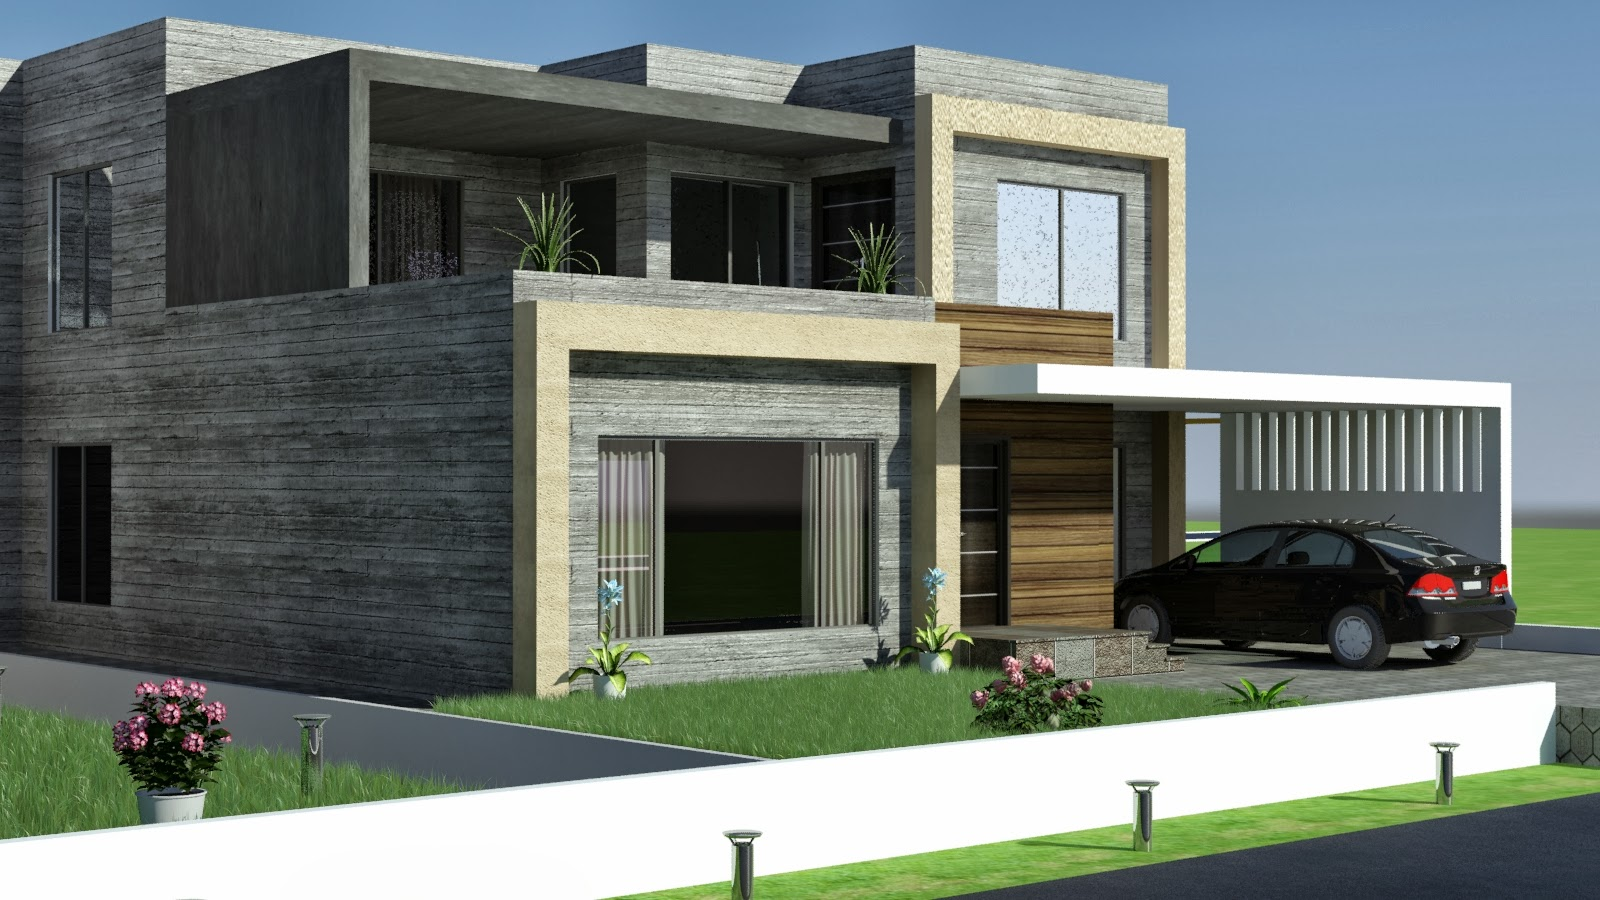 3-D Modern domestic front elevation - e2 Homes, Inc.- Award Winning Custom ....Com: house plans with the front porches House-Home ... Kkanal Old Design Convert to Modern ... - Front Elevation Modern House